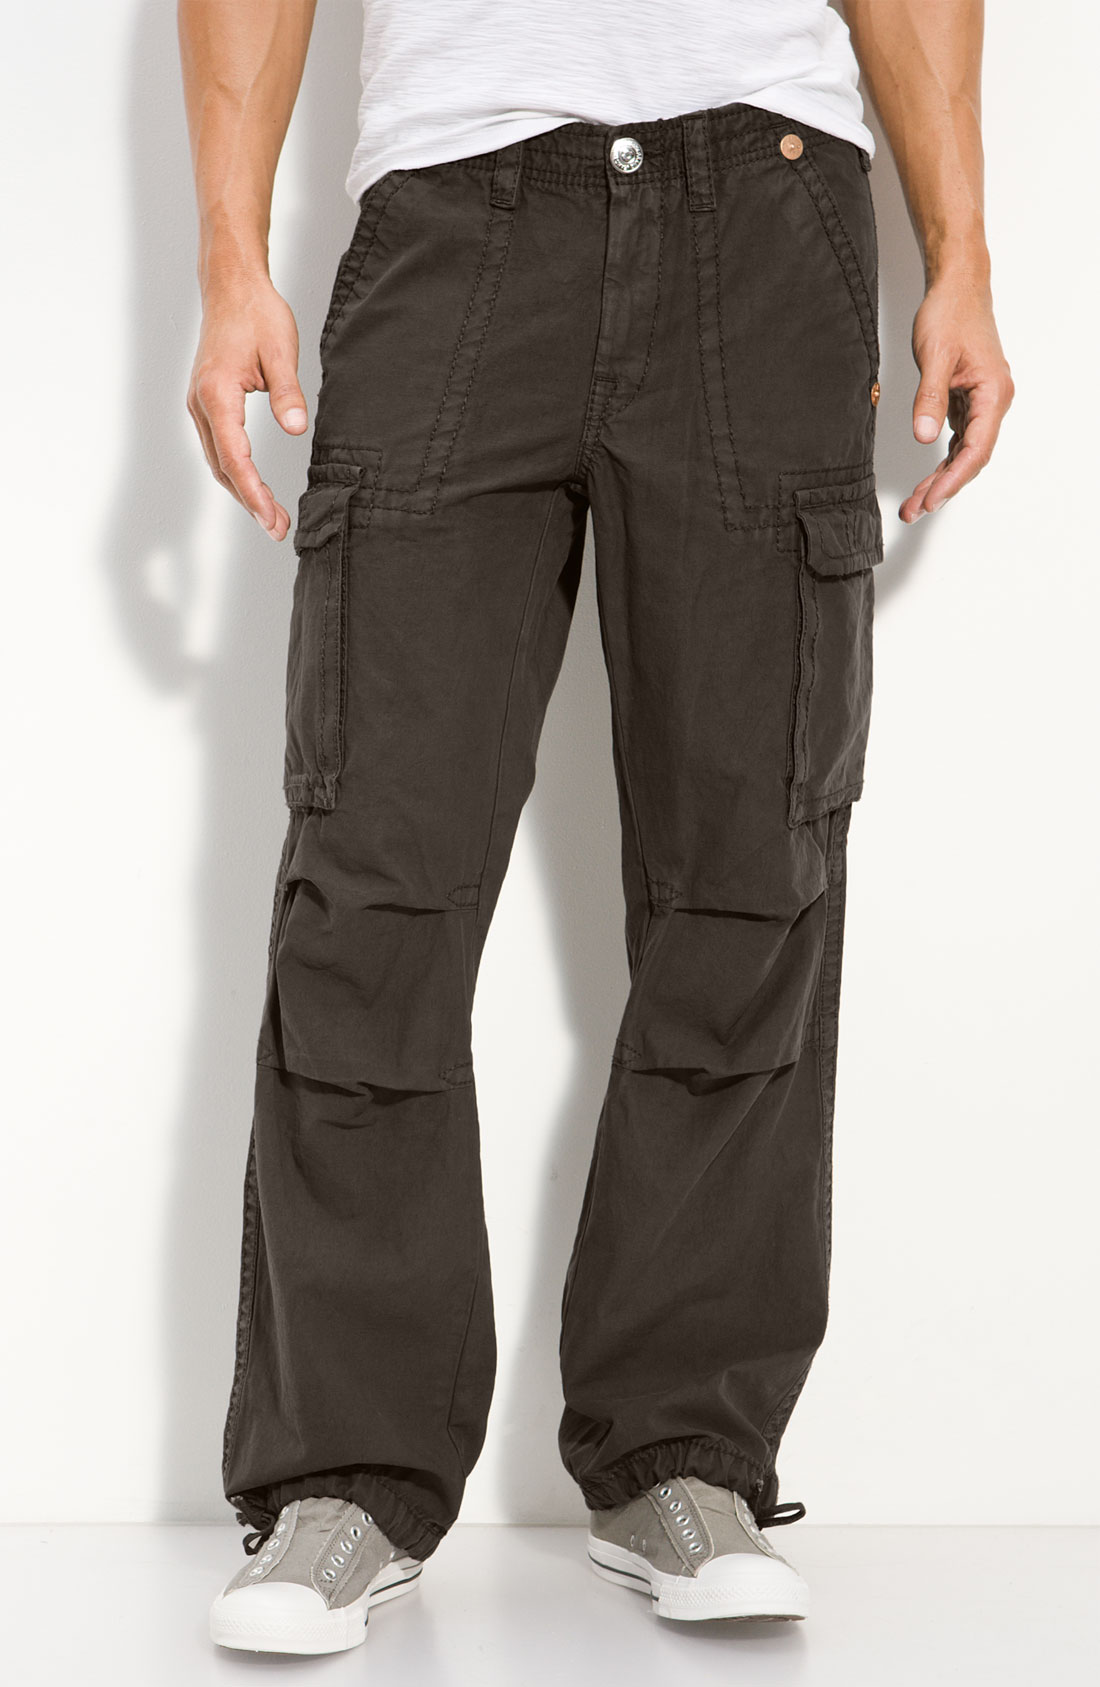 Shop for brown cargo pants online at Target. Free shipping on purchases over $35 and save 5% every day with your Target REDcard.